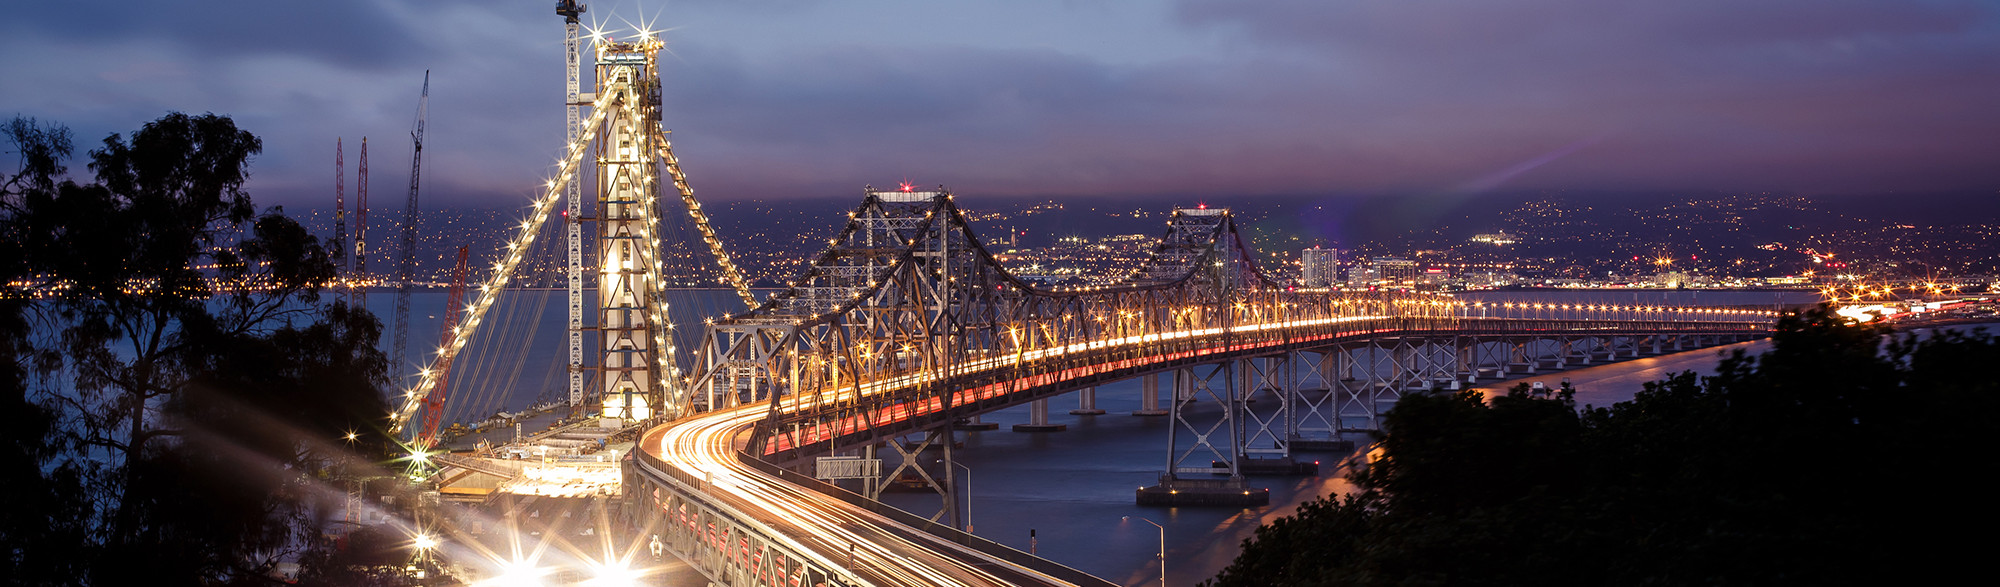 New Bay Bridge of San Francisco